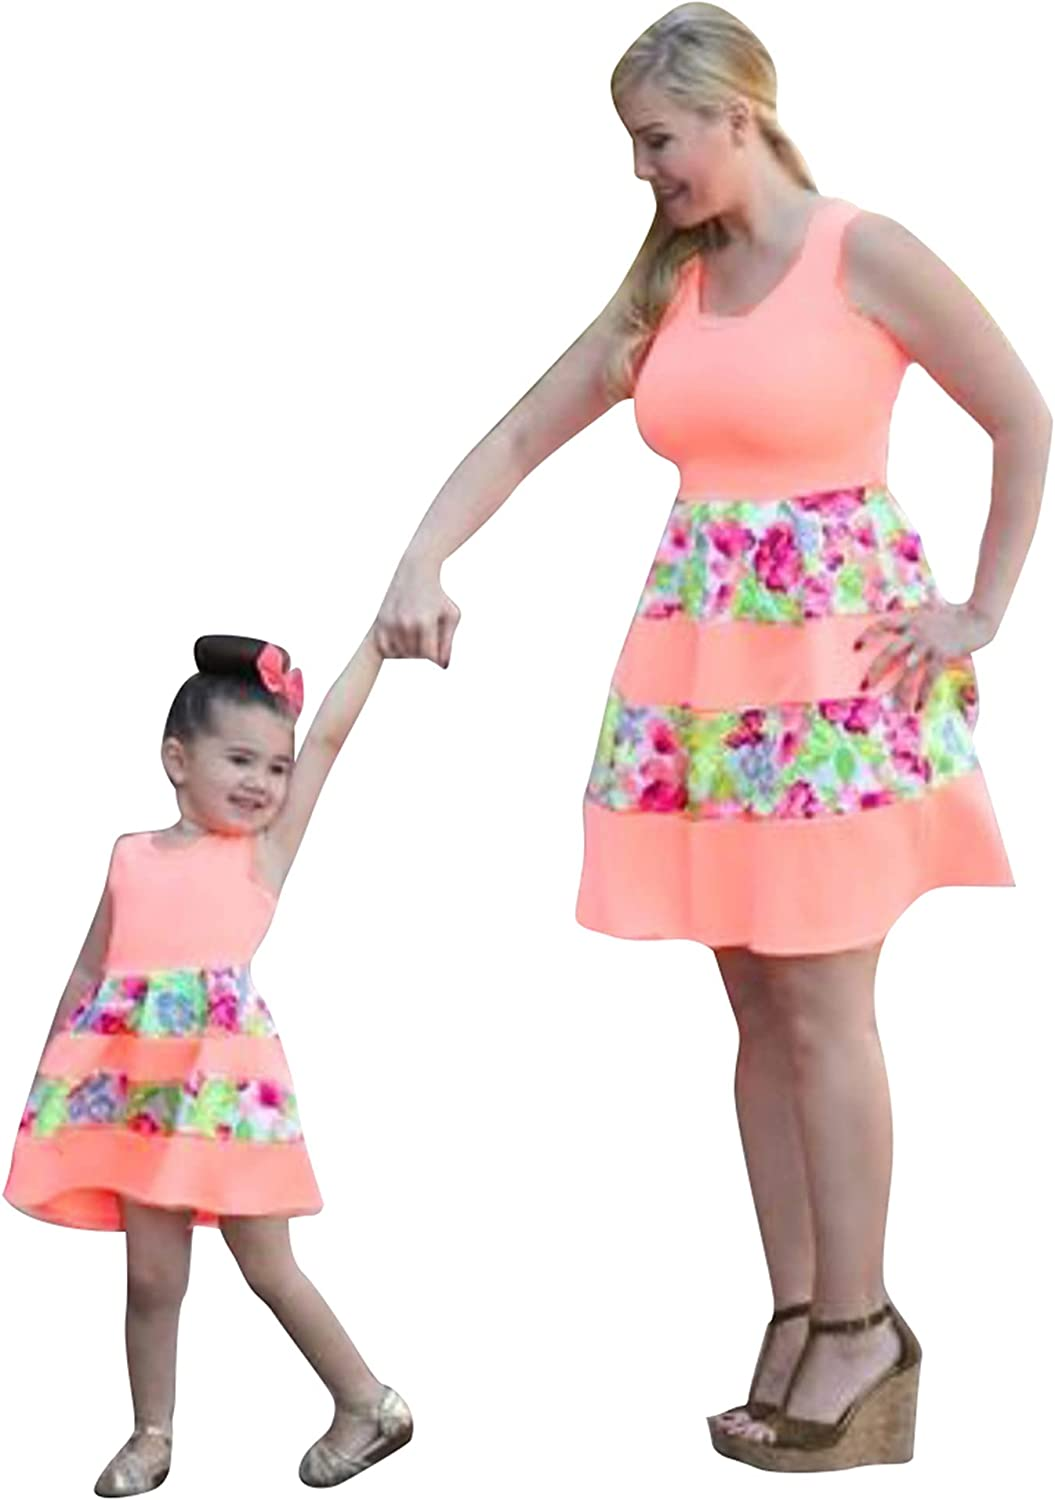 YMING Mother and Daughter Matching Dress Causal Summer Dresses Lace Mini Outfits